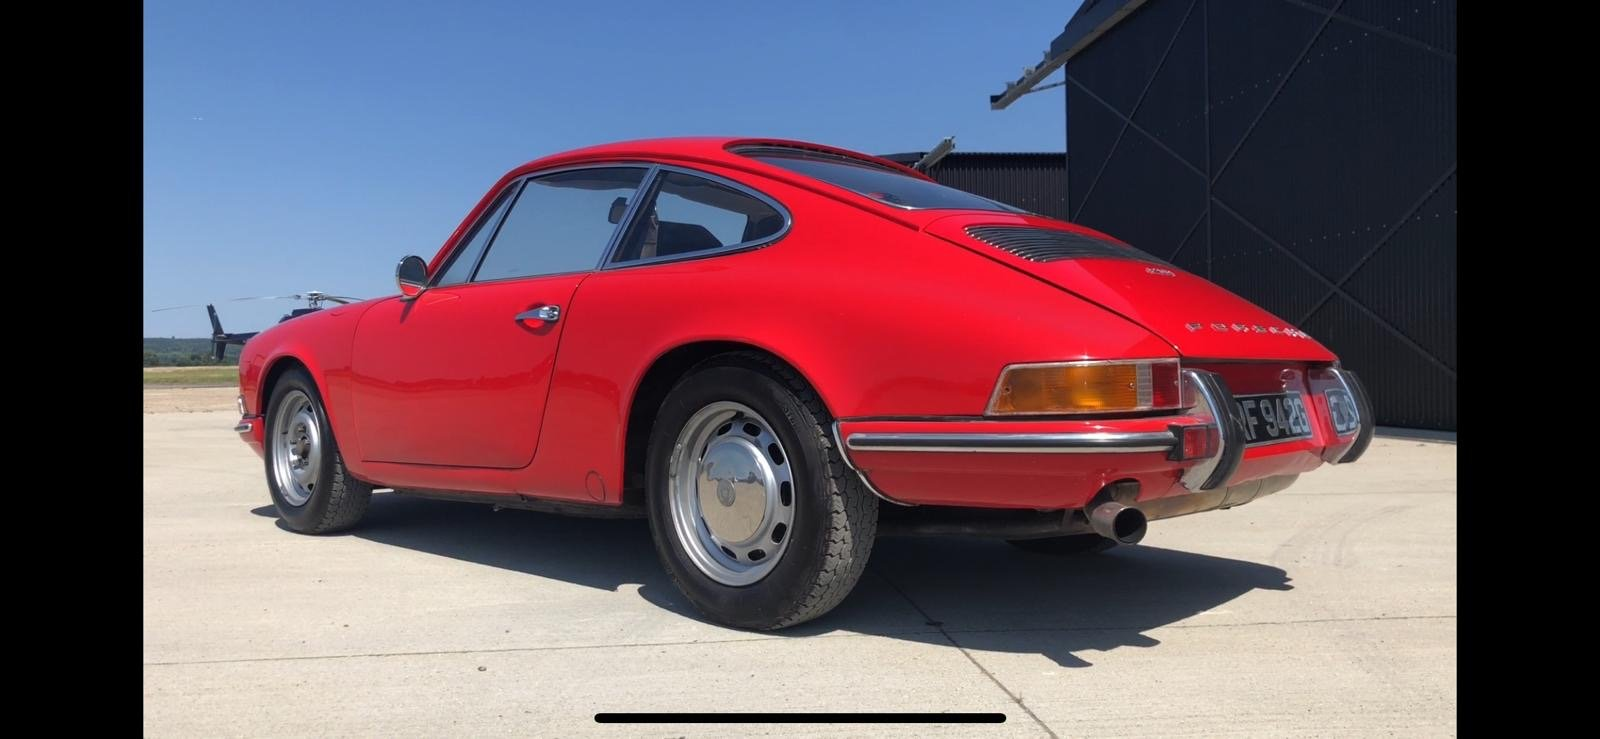 Porsche 911T RHD 1969 Sportamatic Coupe Red For Sale (picture 2 of 9)